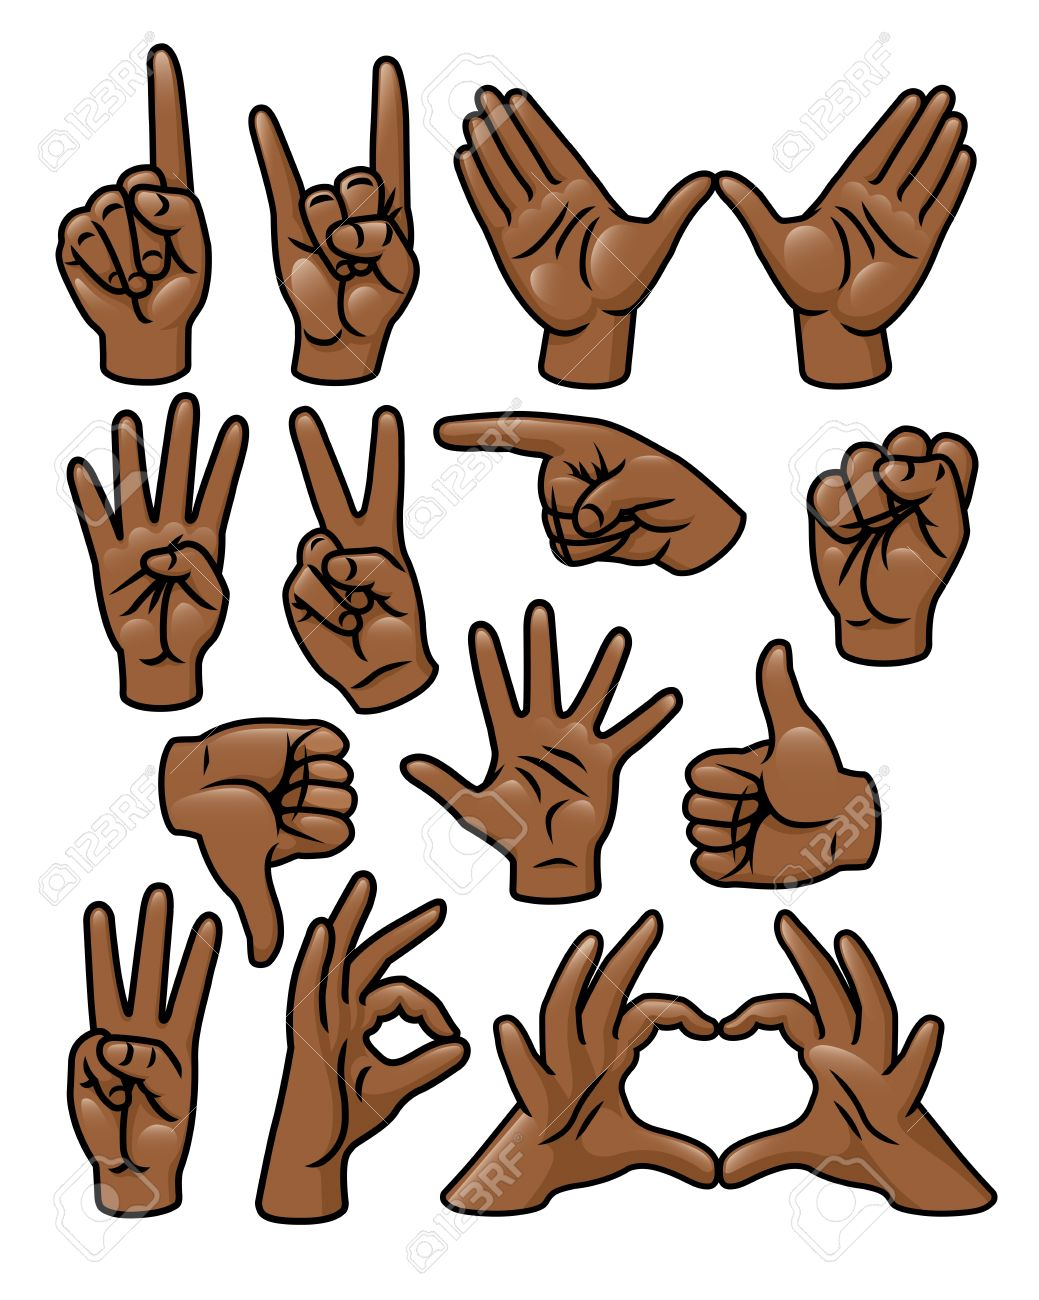 A set of 15 different cartoon hands in various poses Stock Vector - 18263859